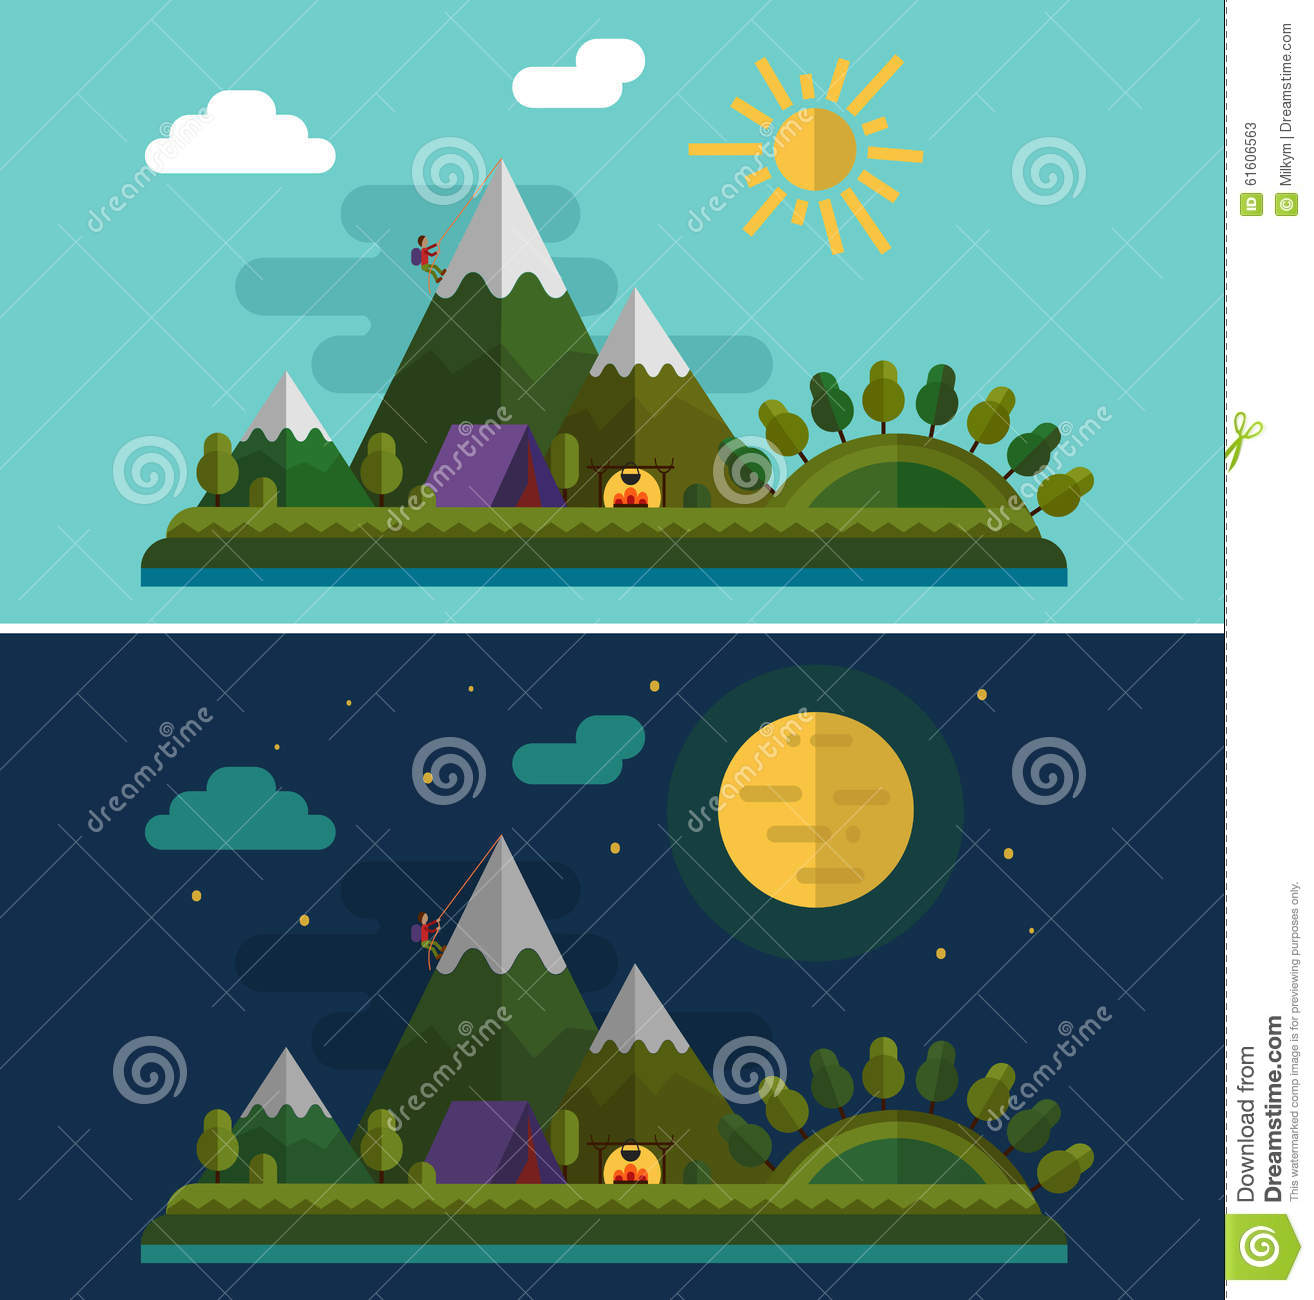 Landscape Design In A Day: Day And Night Landscapes. Stock Vector. Illustration Of